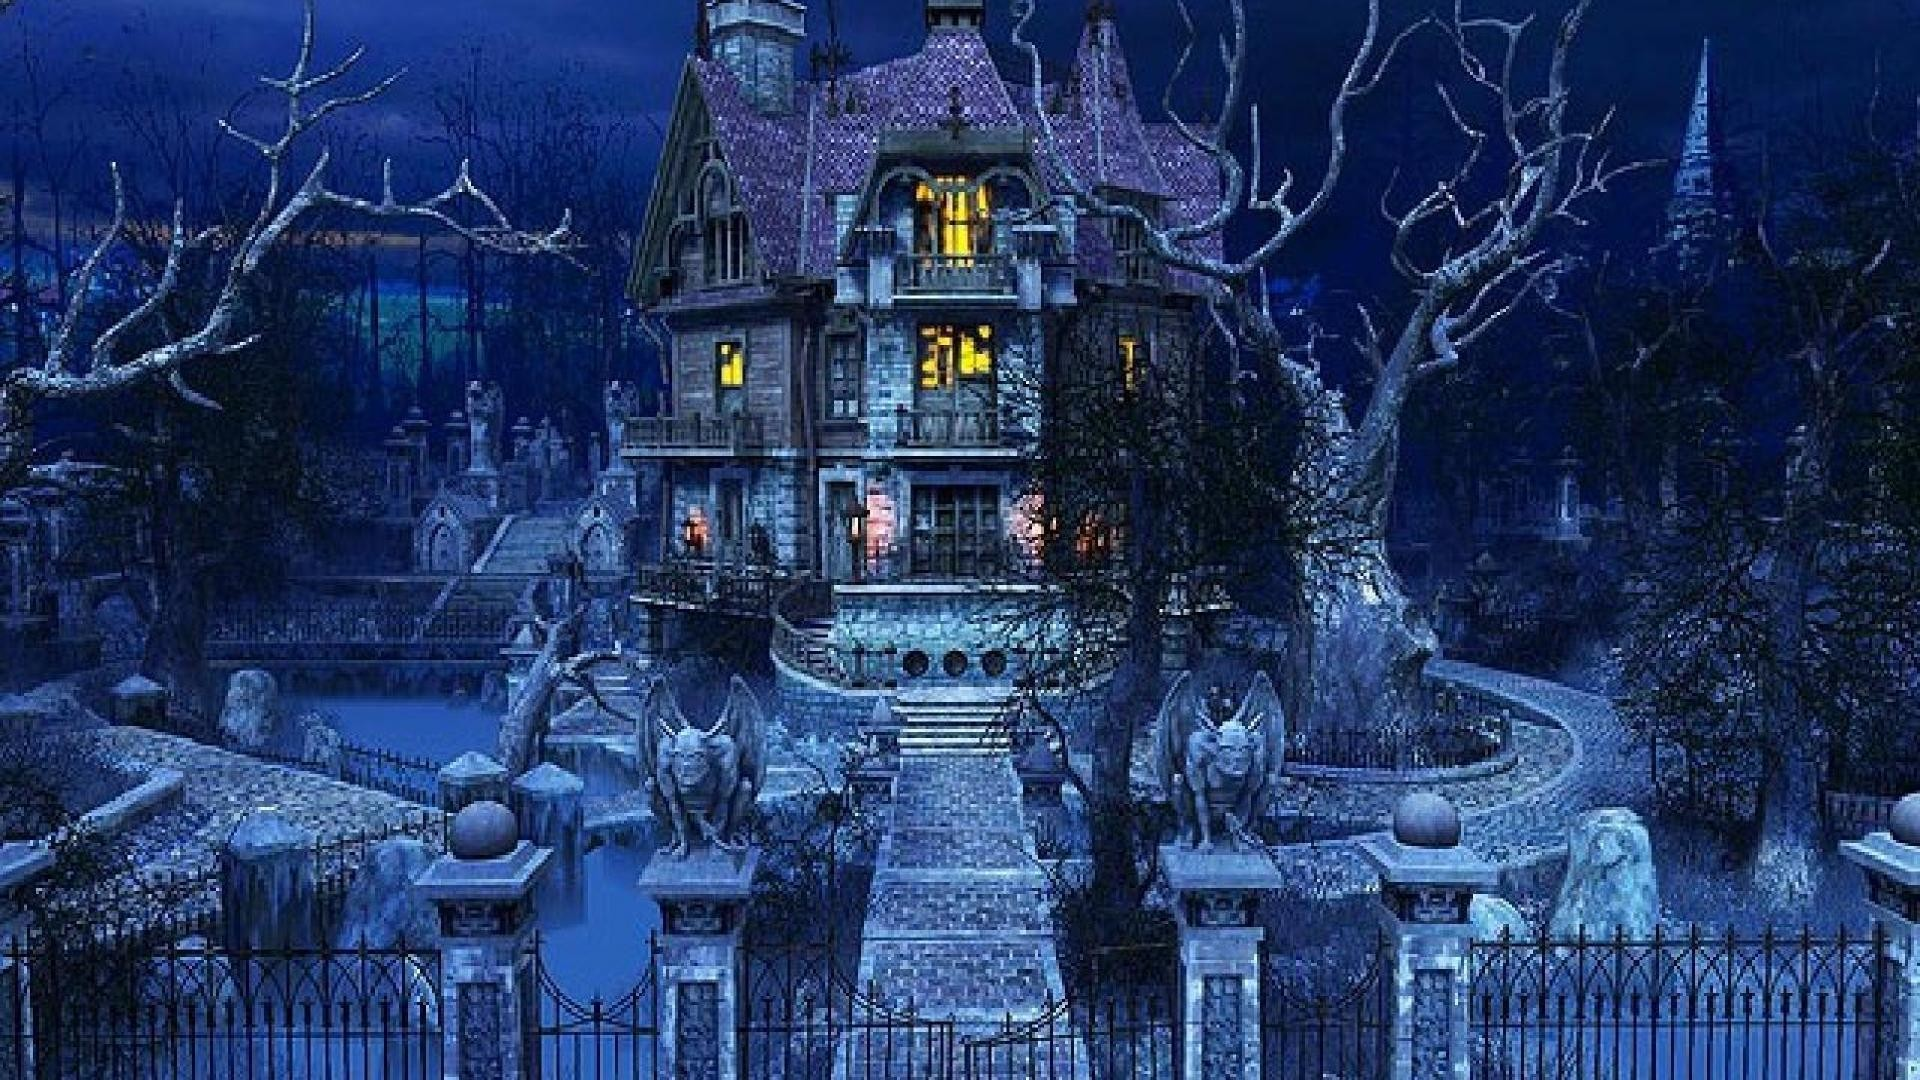 1920x1080 haunted mansion wallpaper 61322 HQ Desktop Wallpapers